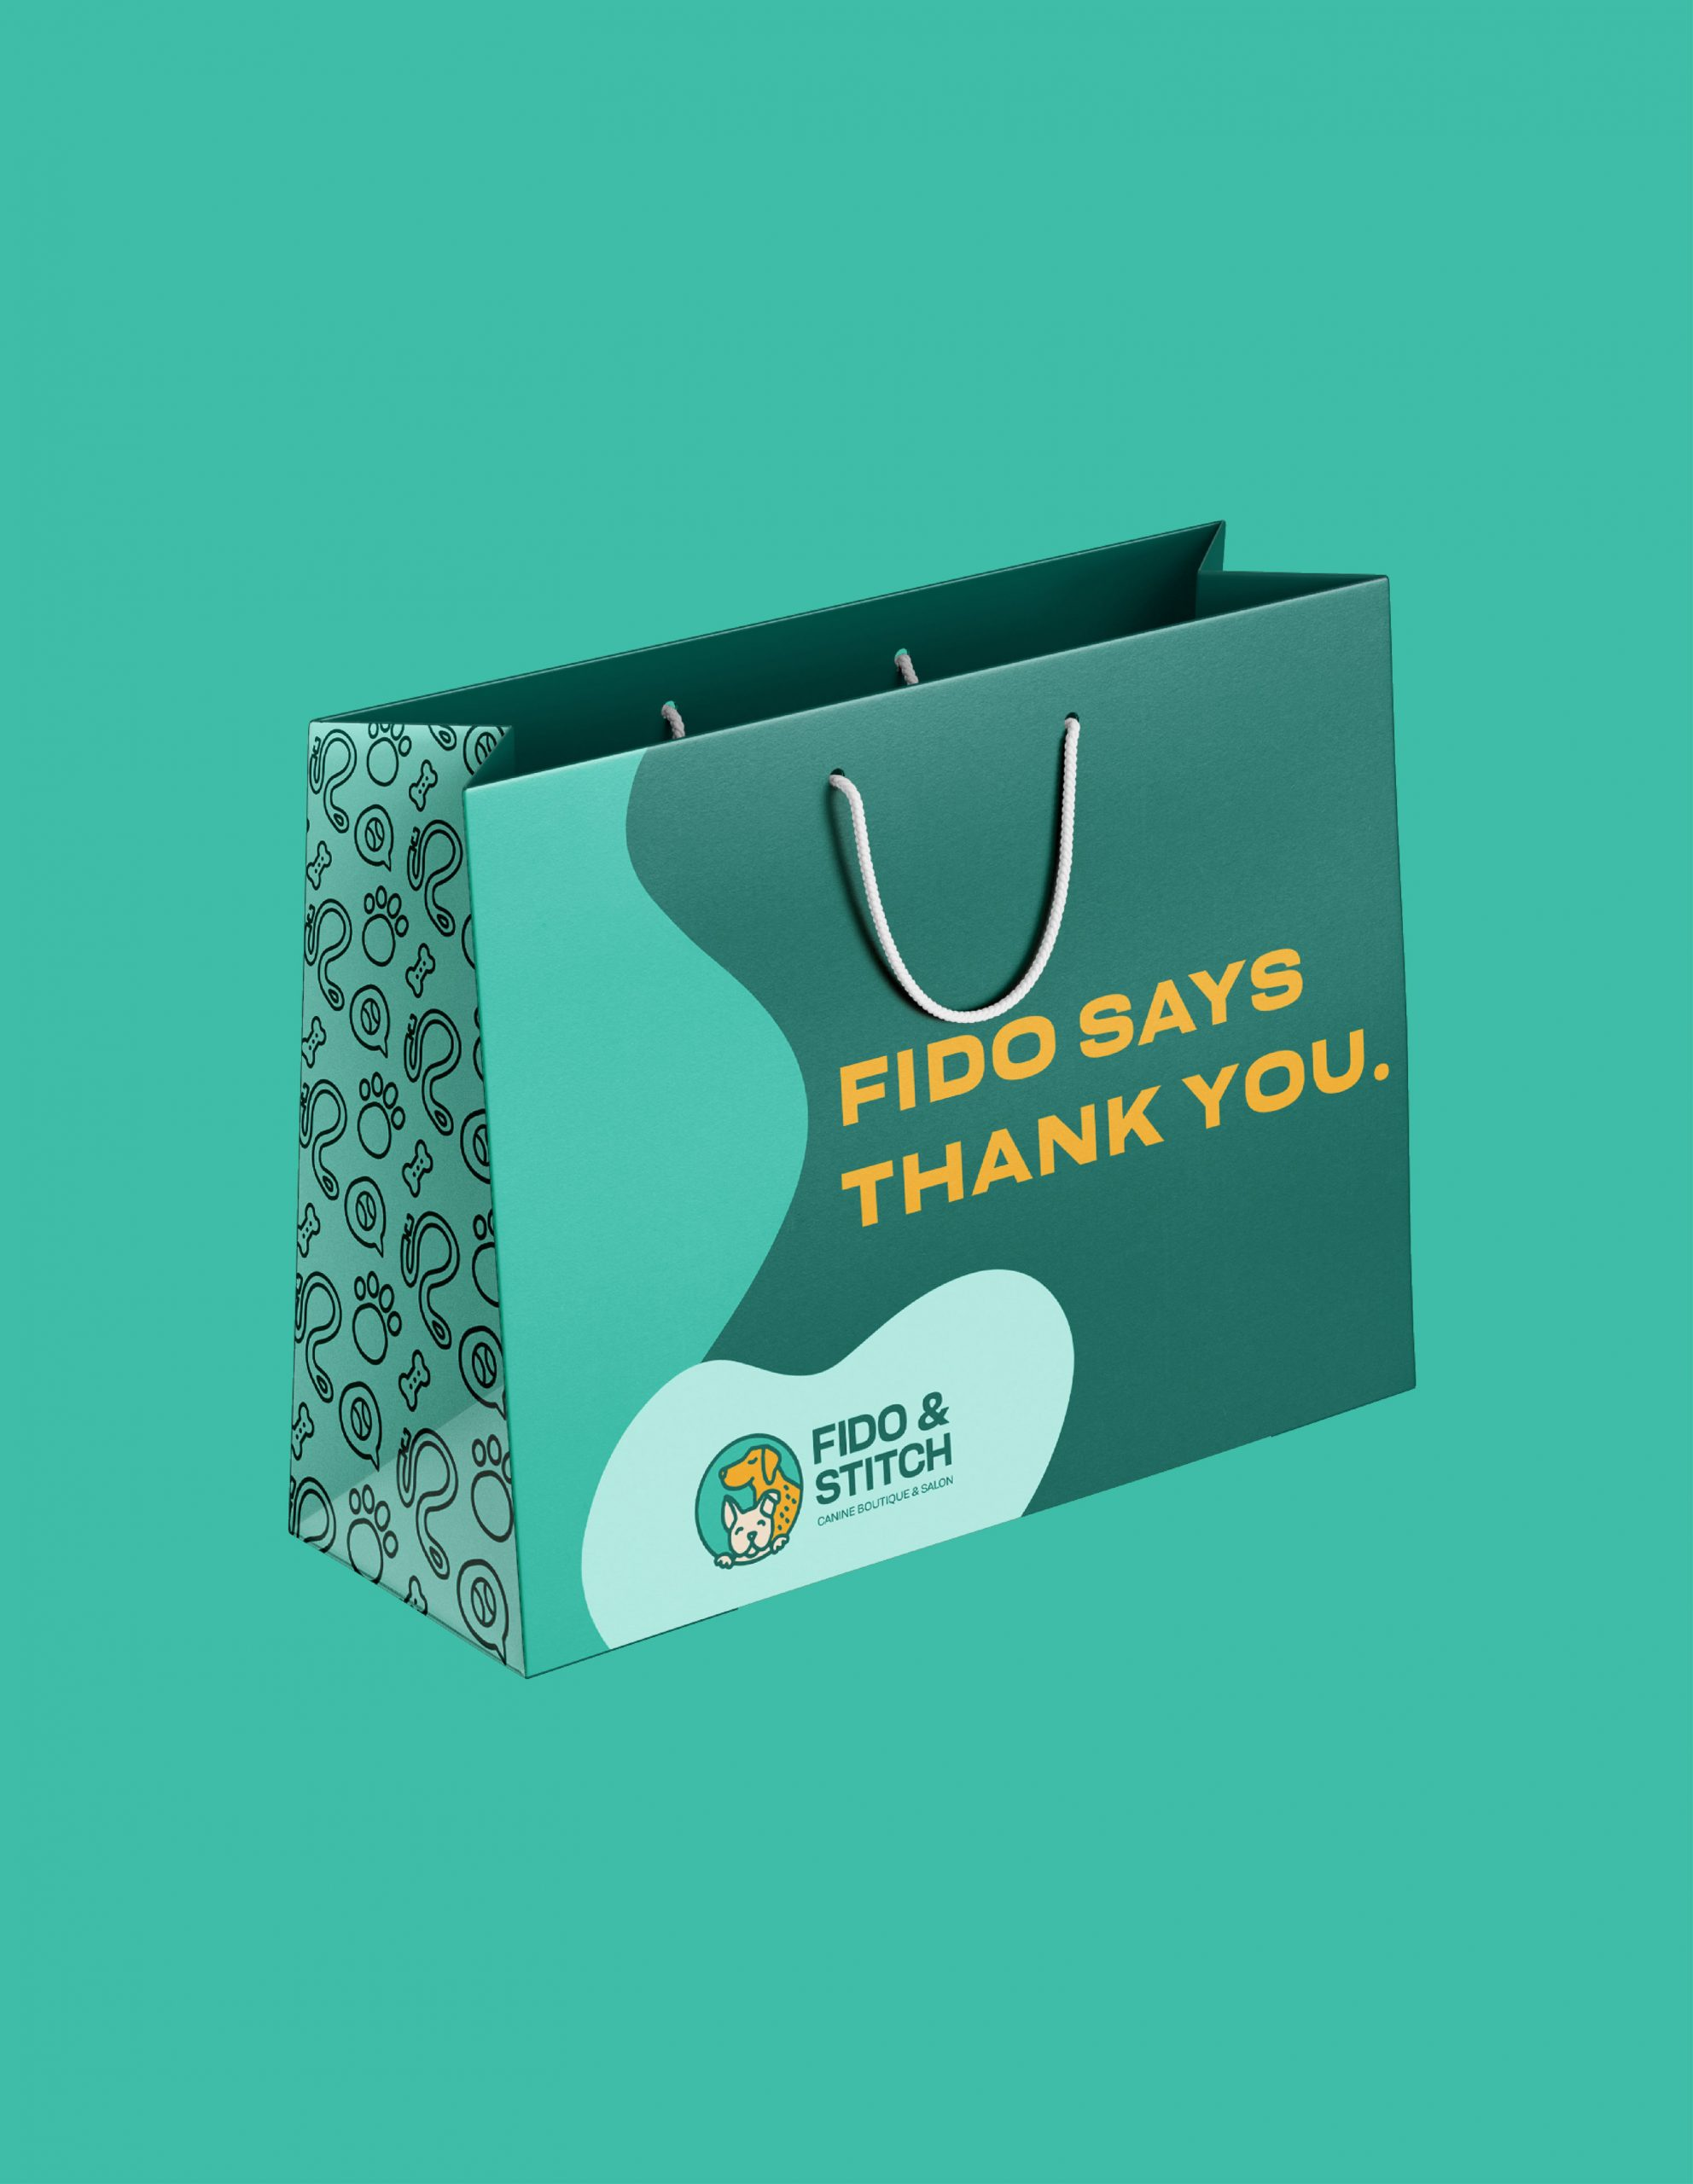 gift bag with text Fido thanks you